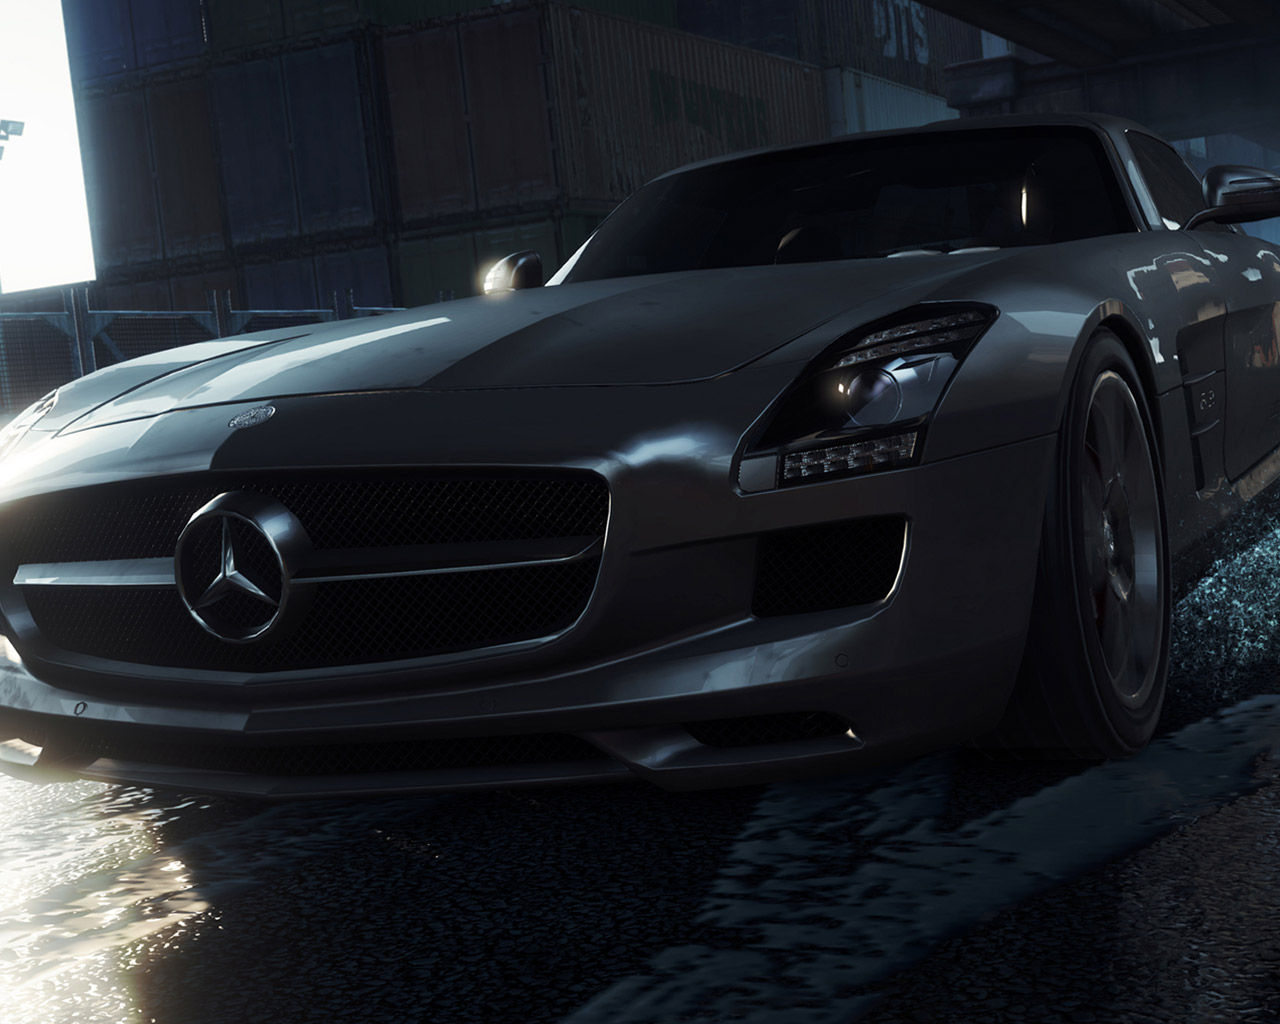 Free Need for Speed: Most Wanted (2012) Wallpaper in 1280x1024